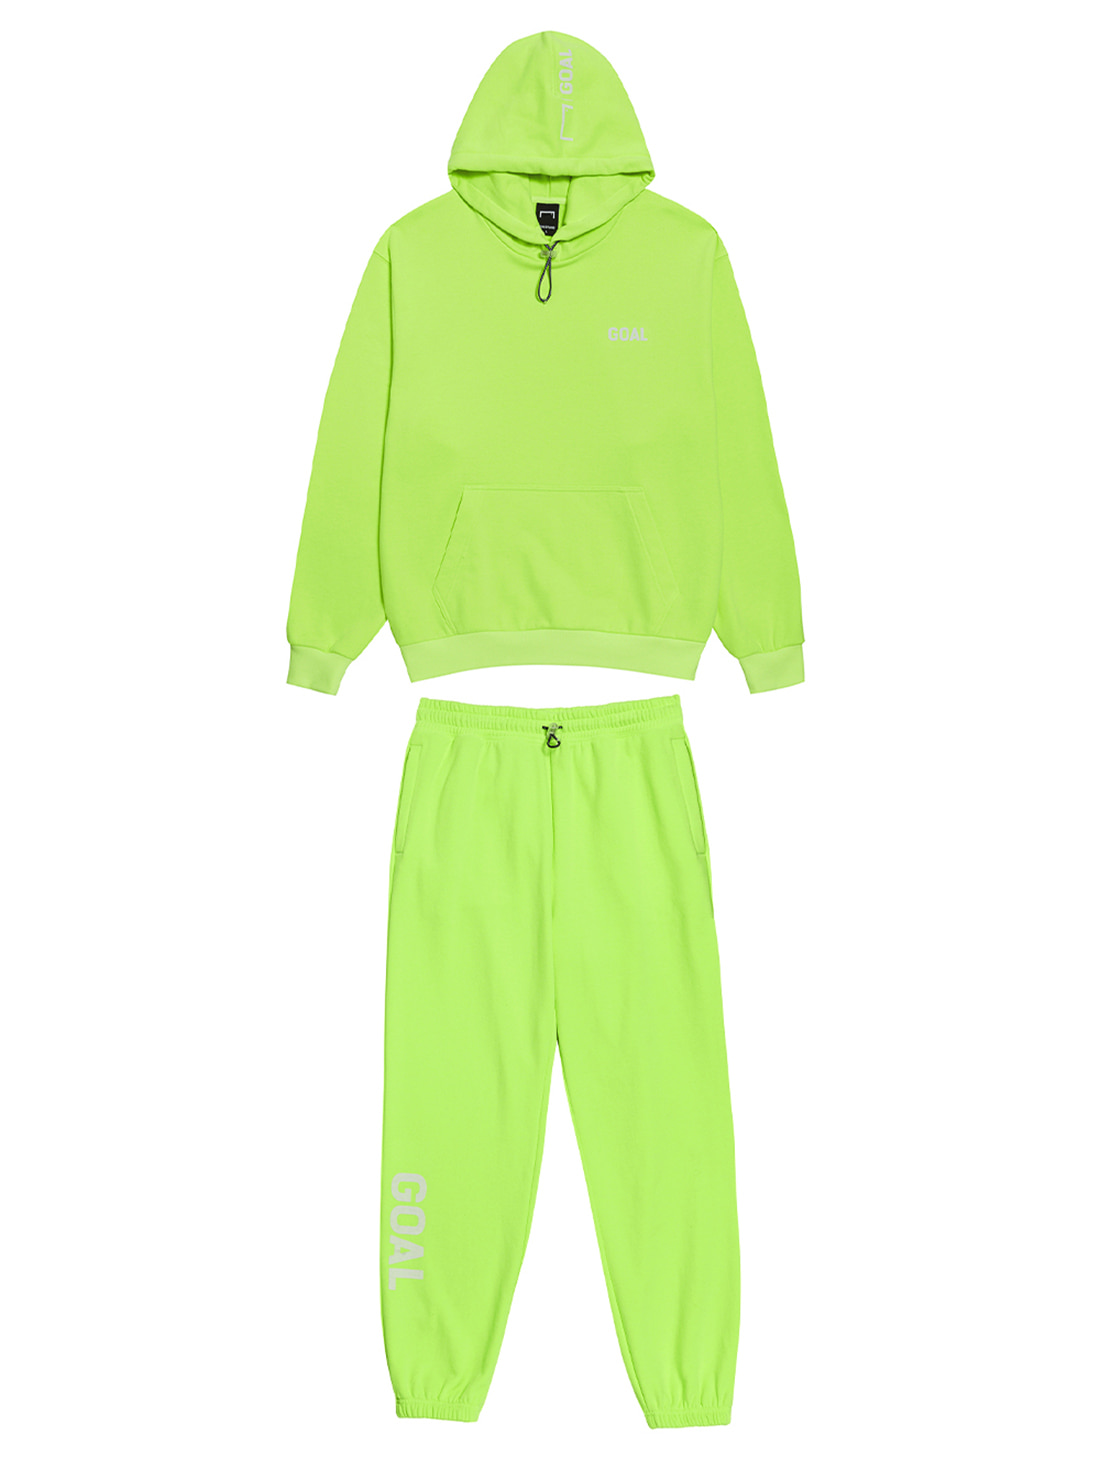 GOALSTUDIO [10% OFF] FLOCKING HOODIE & PANTS SET - LIME YELLOW